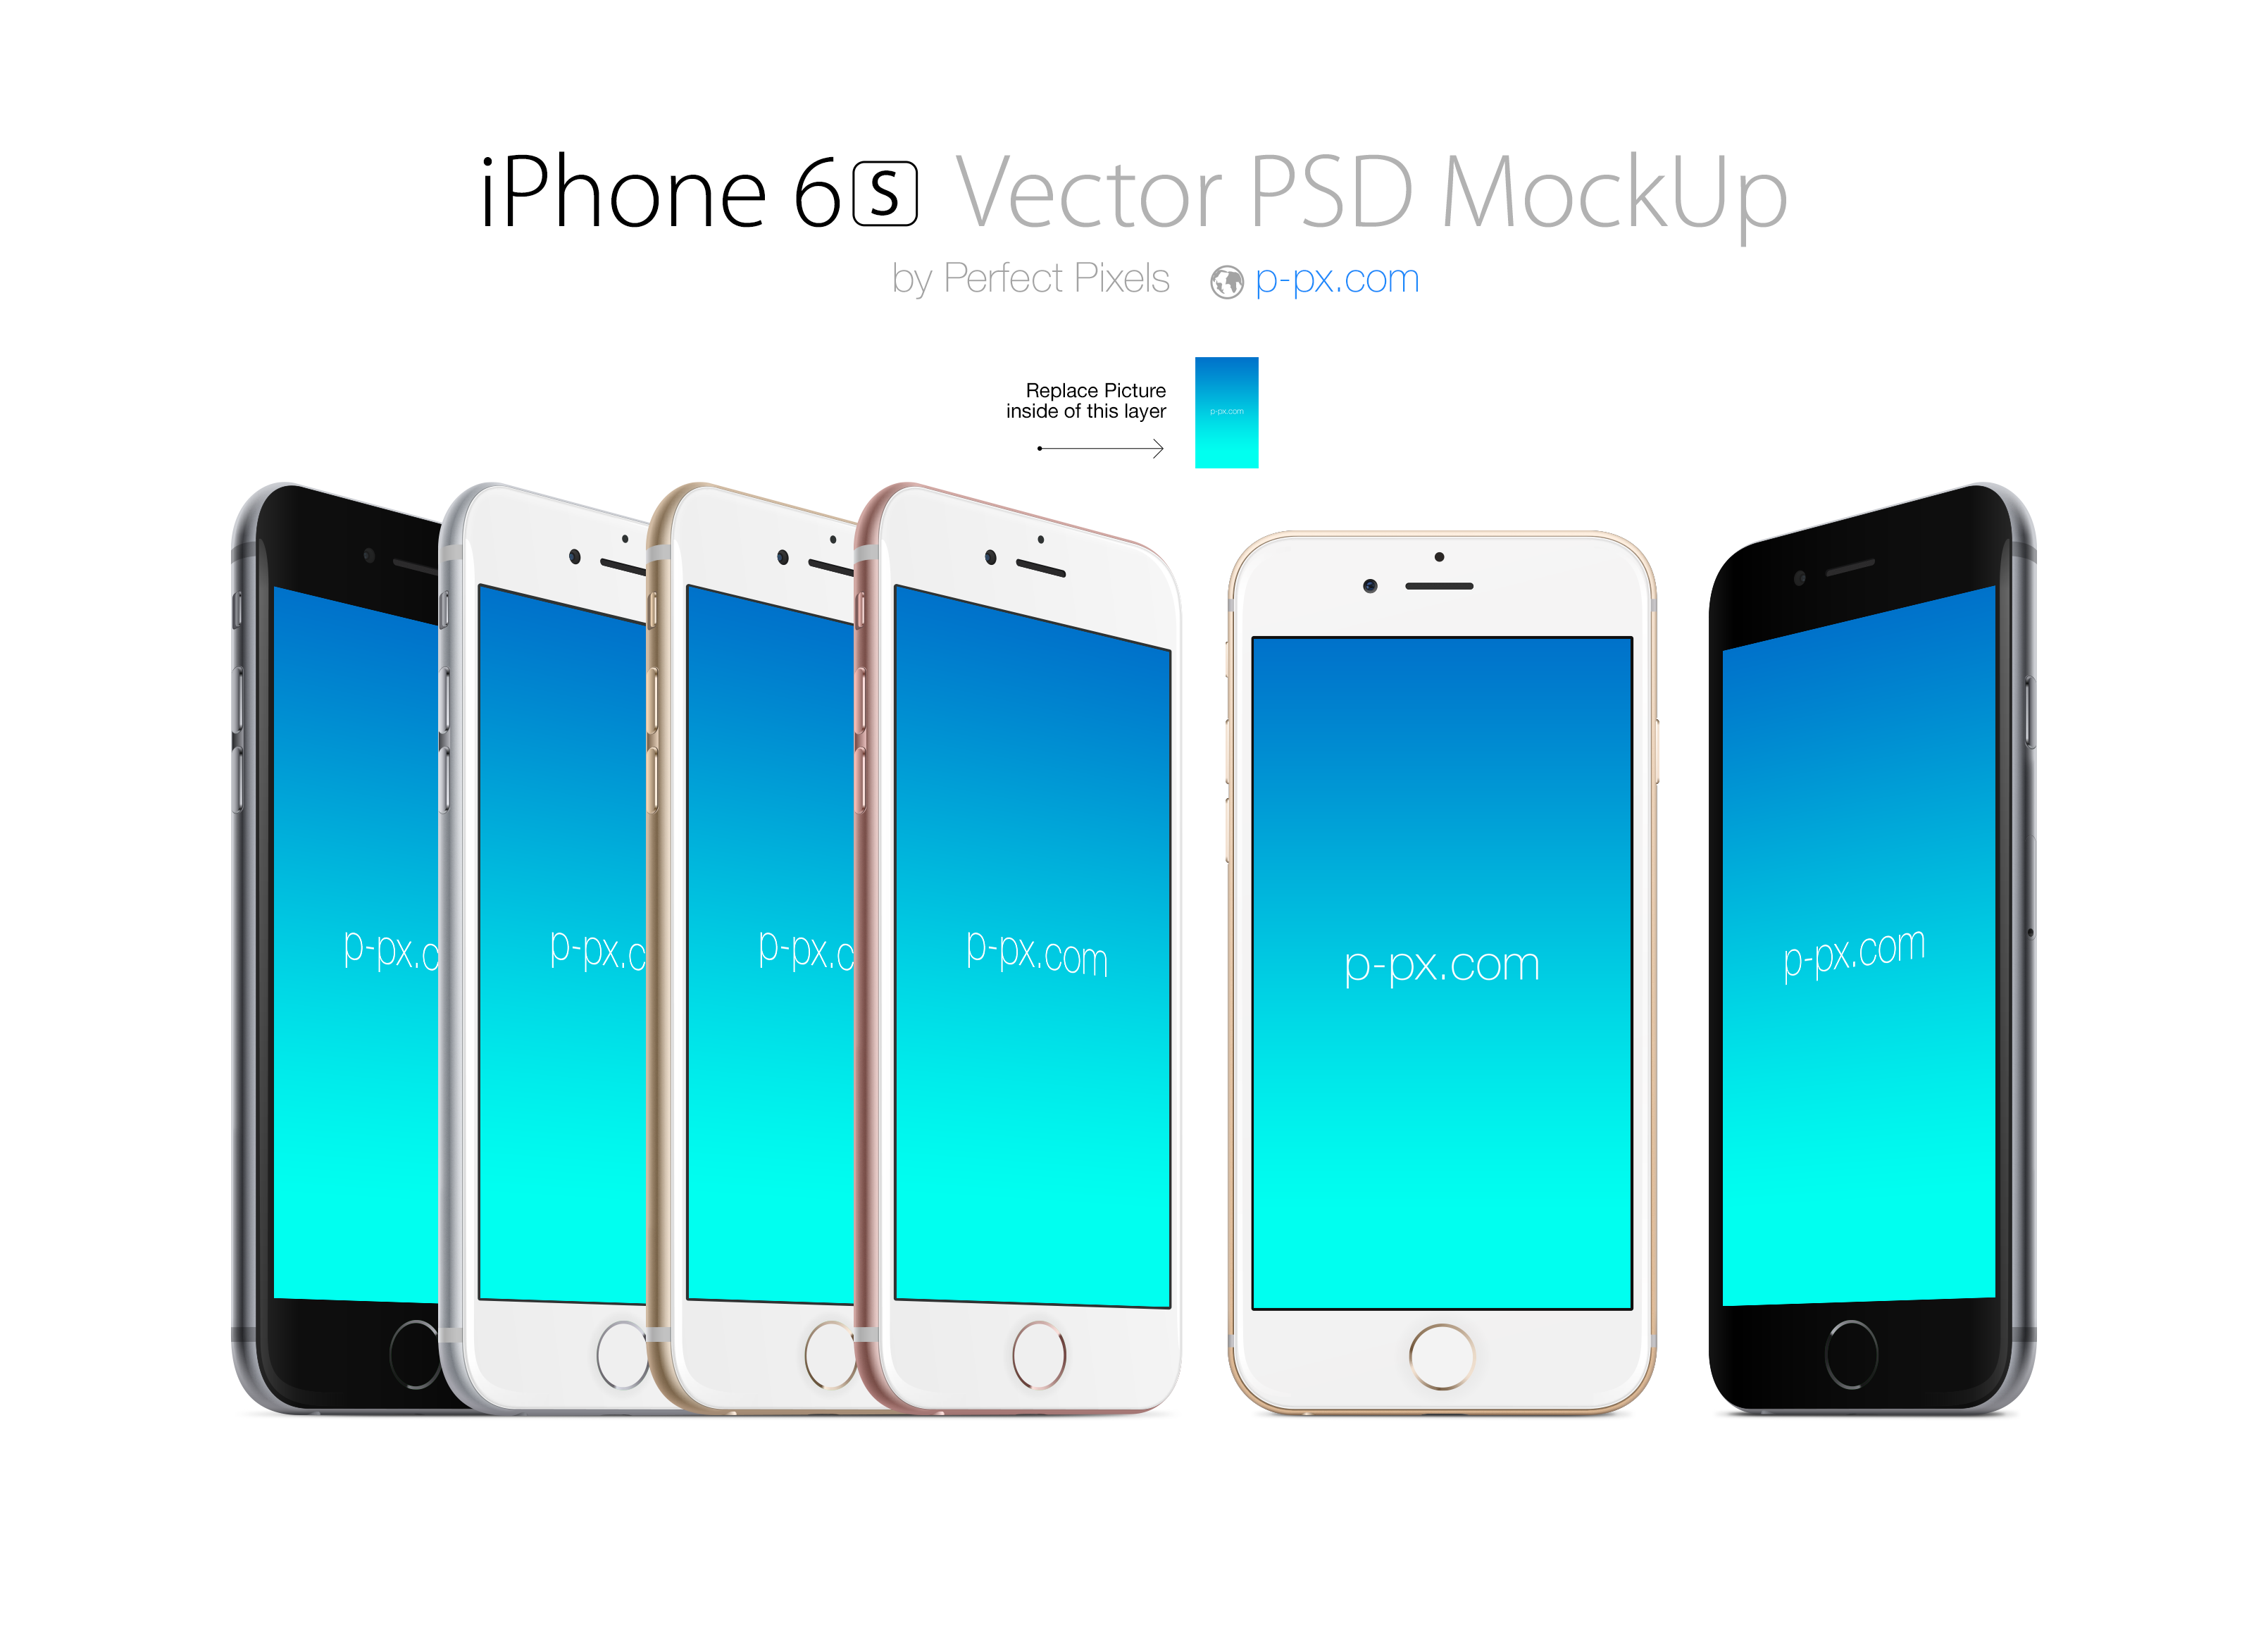 3220x2324 Iphone 6s Front And Angled Views Psd + Ai Mockup. Perfect Pixels